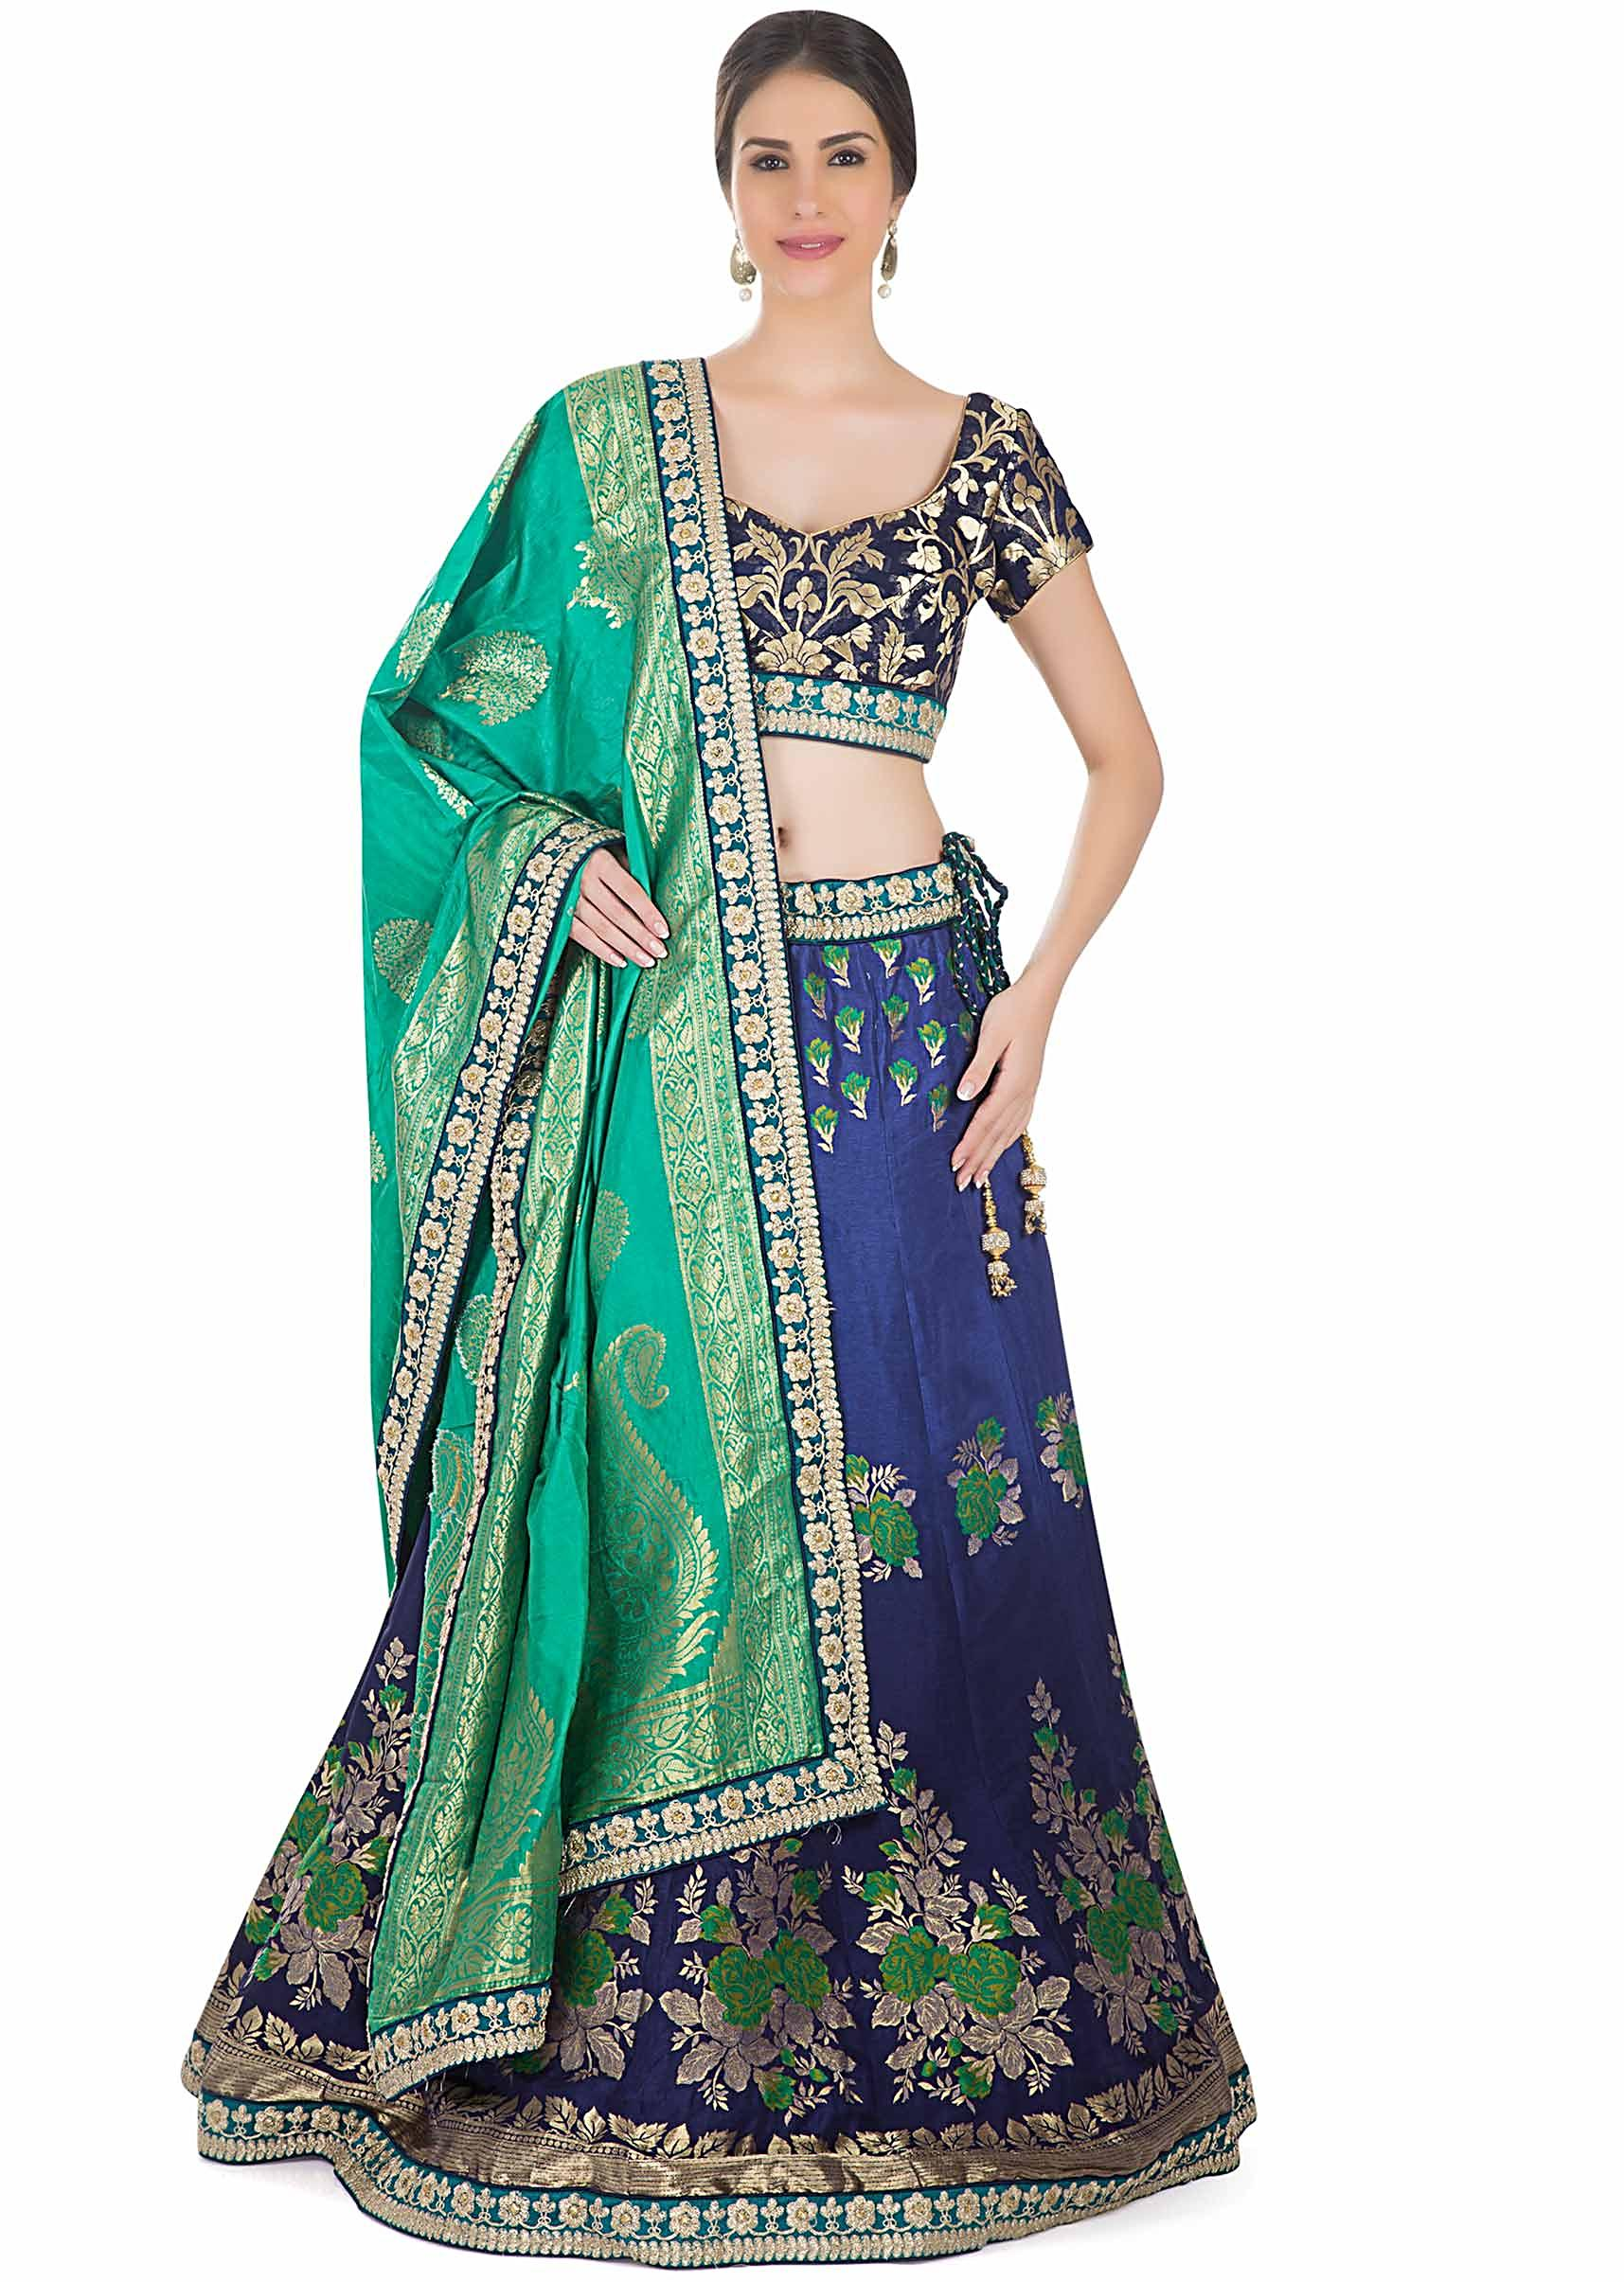 d8b3efddd5a27 Blue Brocade Silk Lehenga Blouse and Green Dupatta Styled with Zari Lace  Border only on KalkiMore Detail